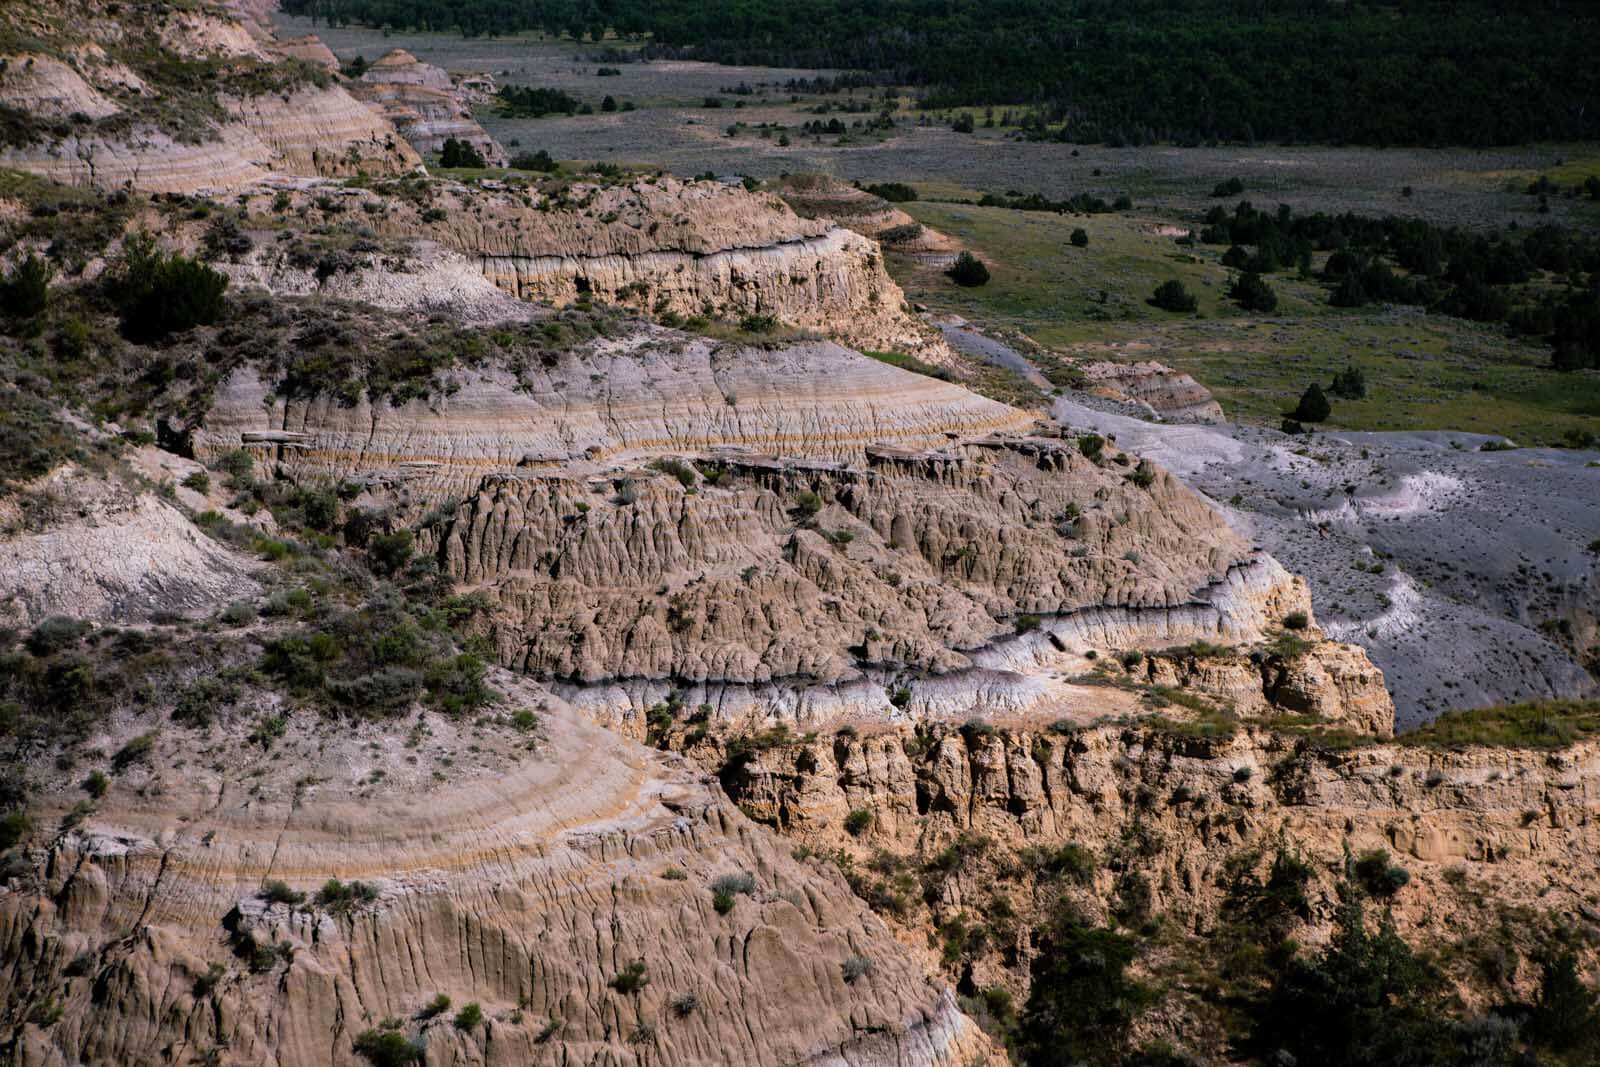 Rock formations and views at Theodore Roosevelt National Park North Unit in North Dakota